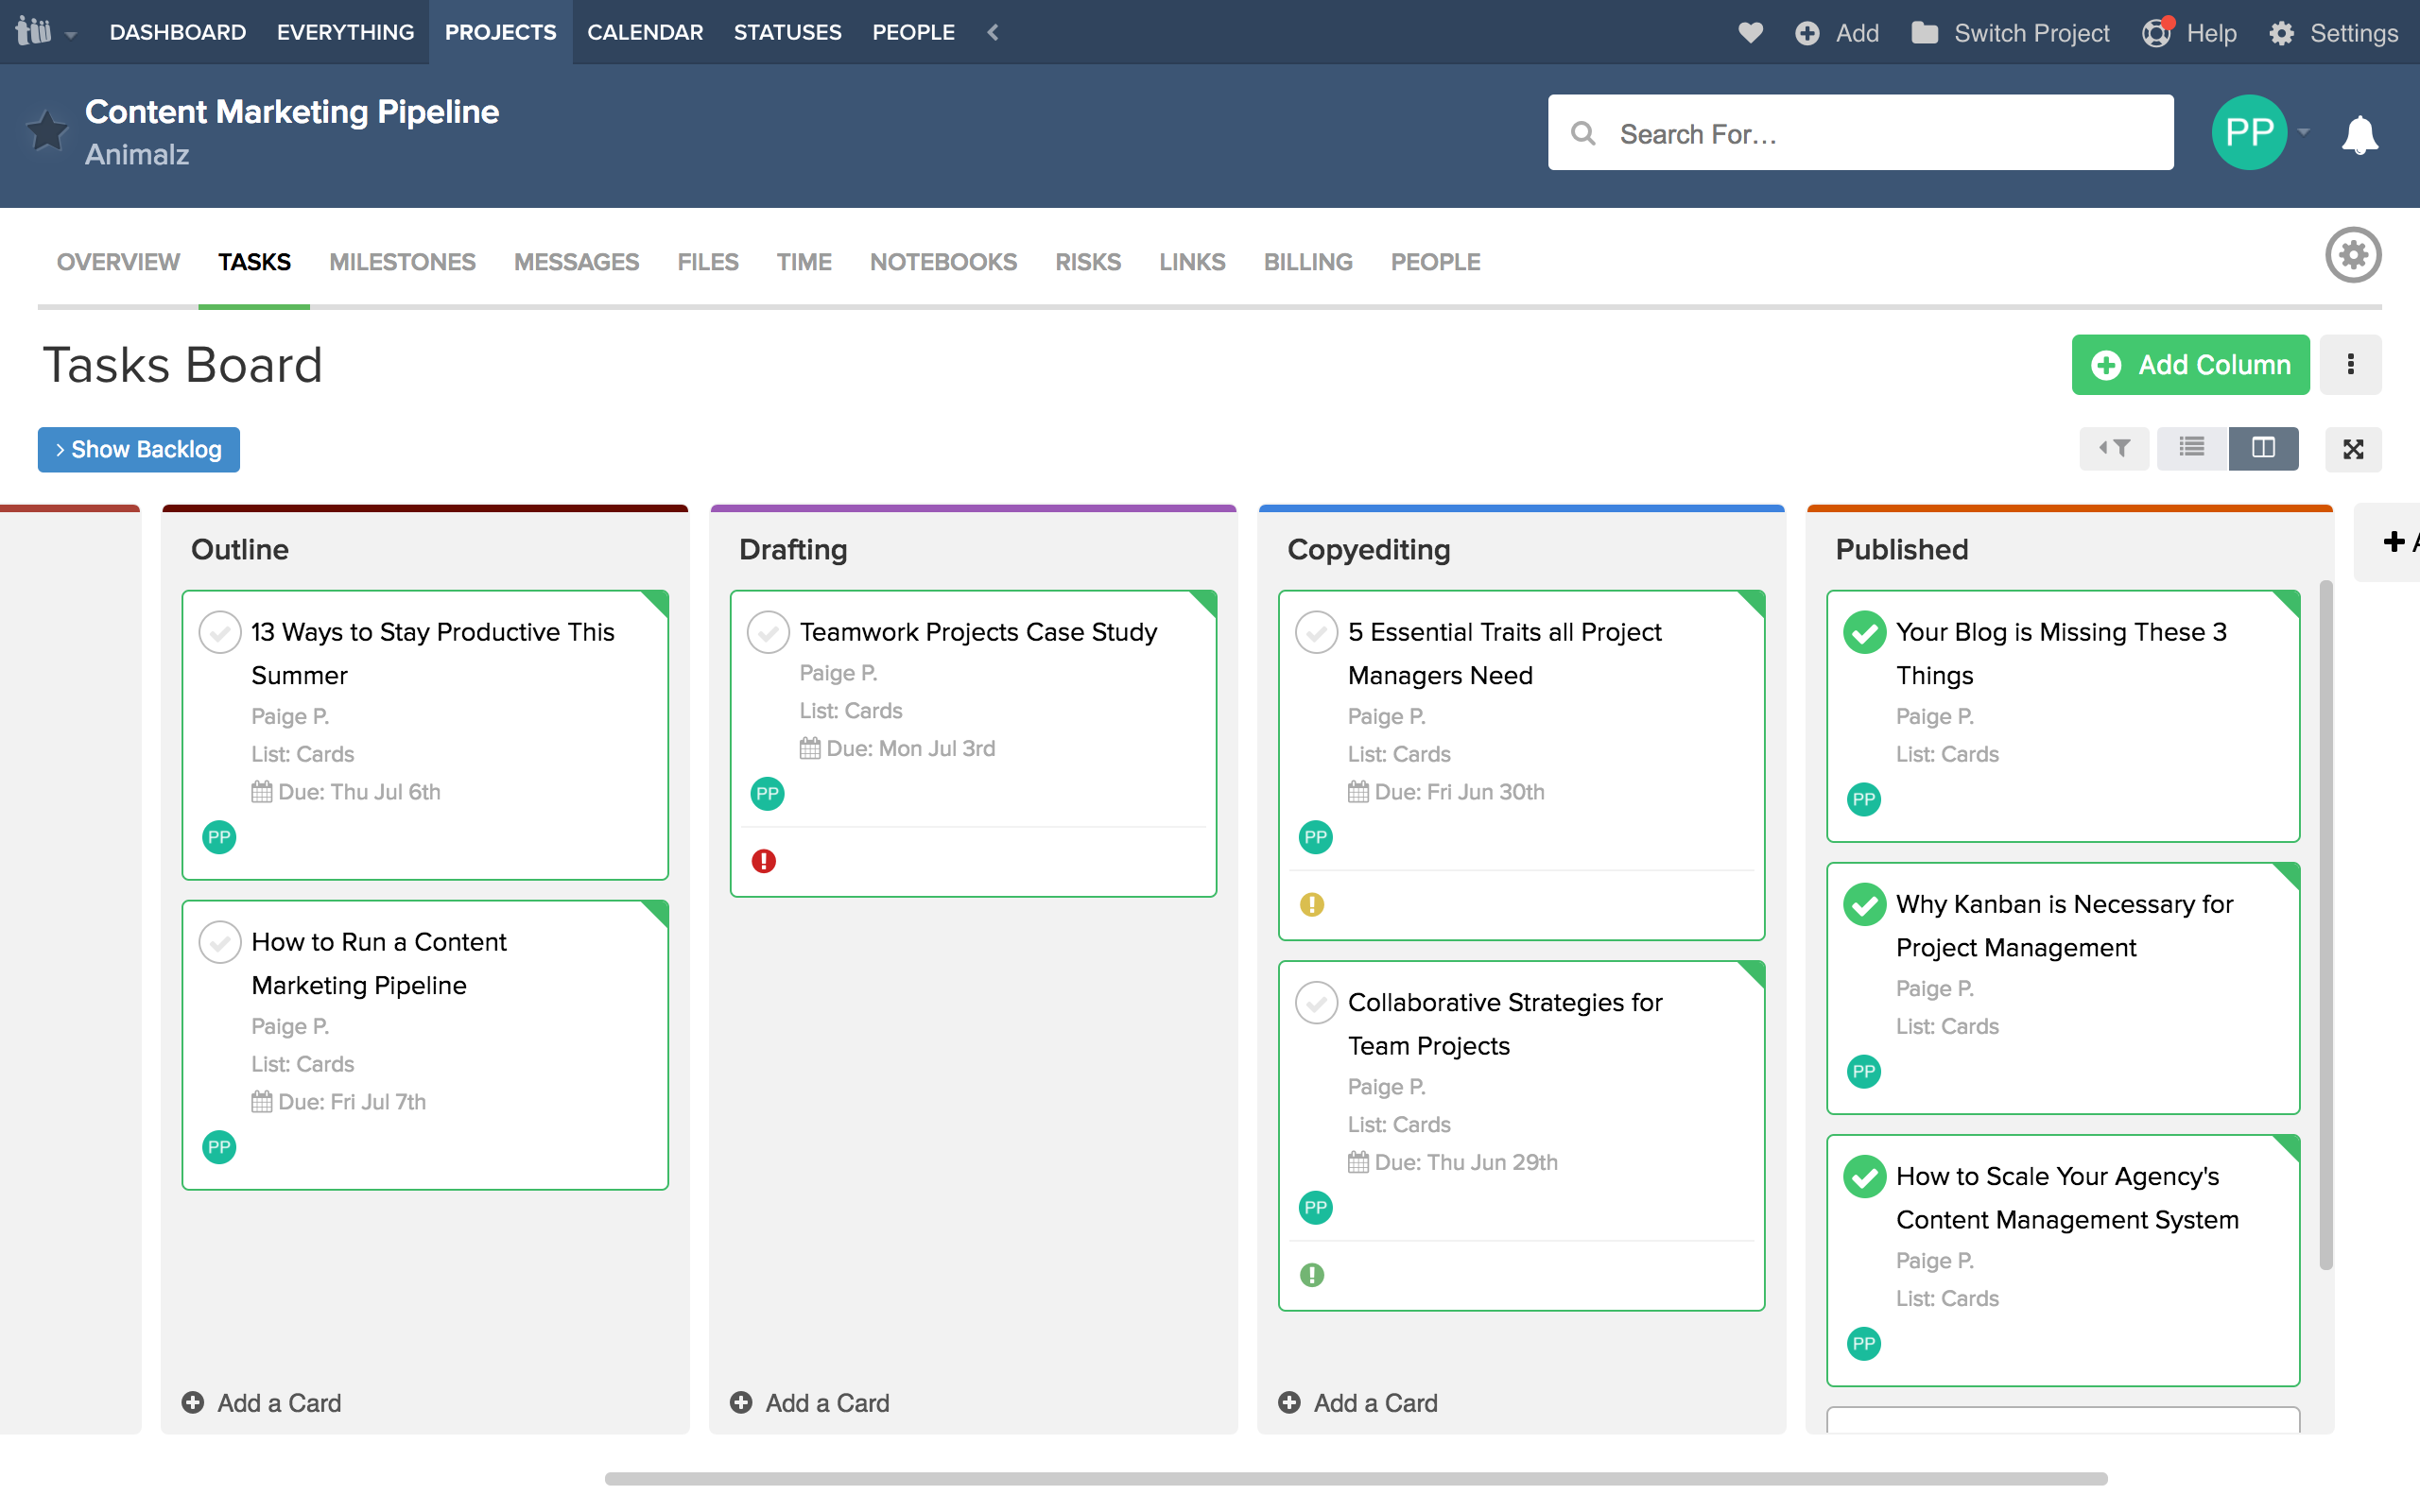 Using Board View in Teamwork Projects for your agency's content marketing workflow